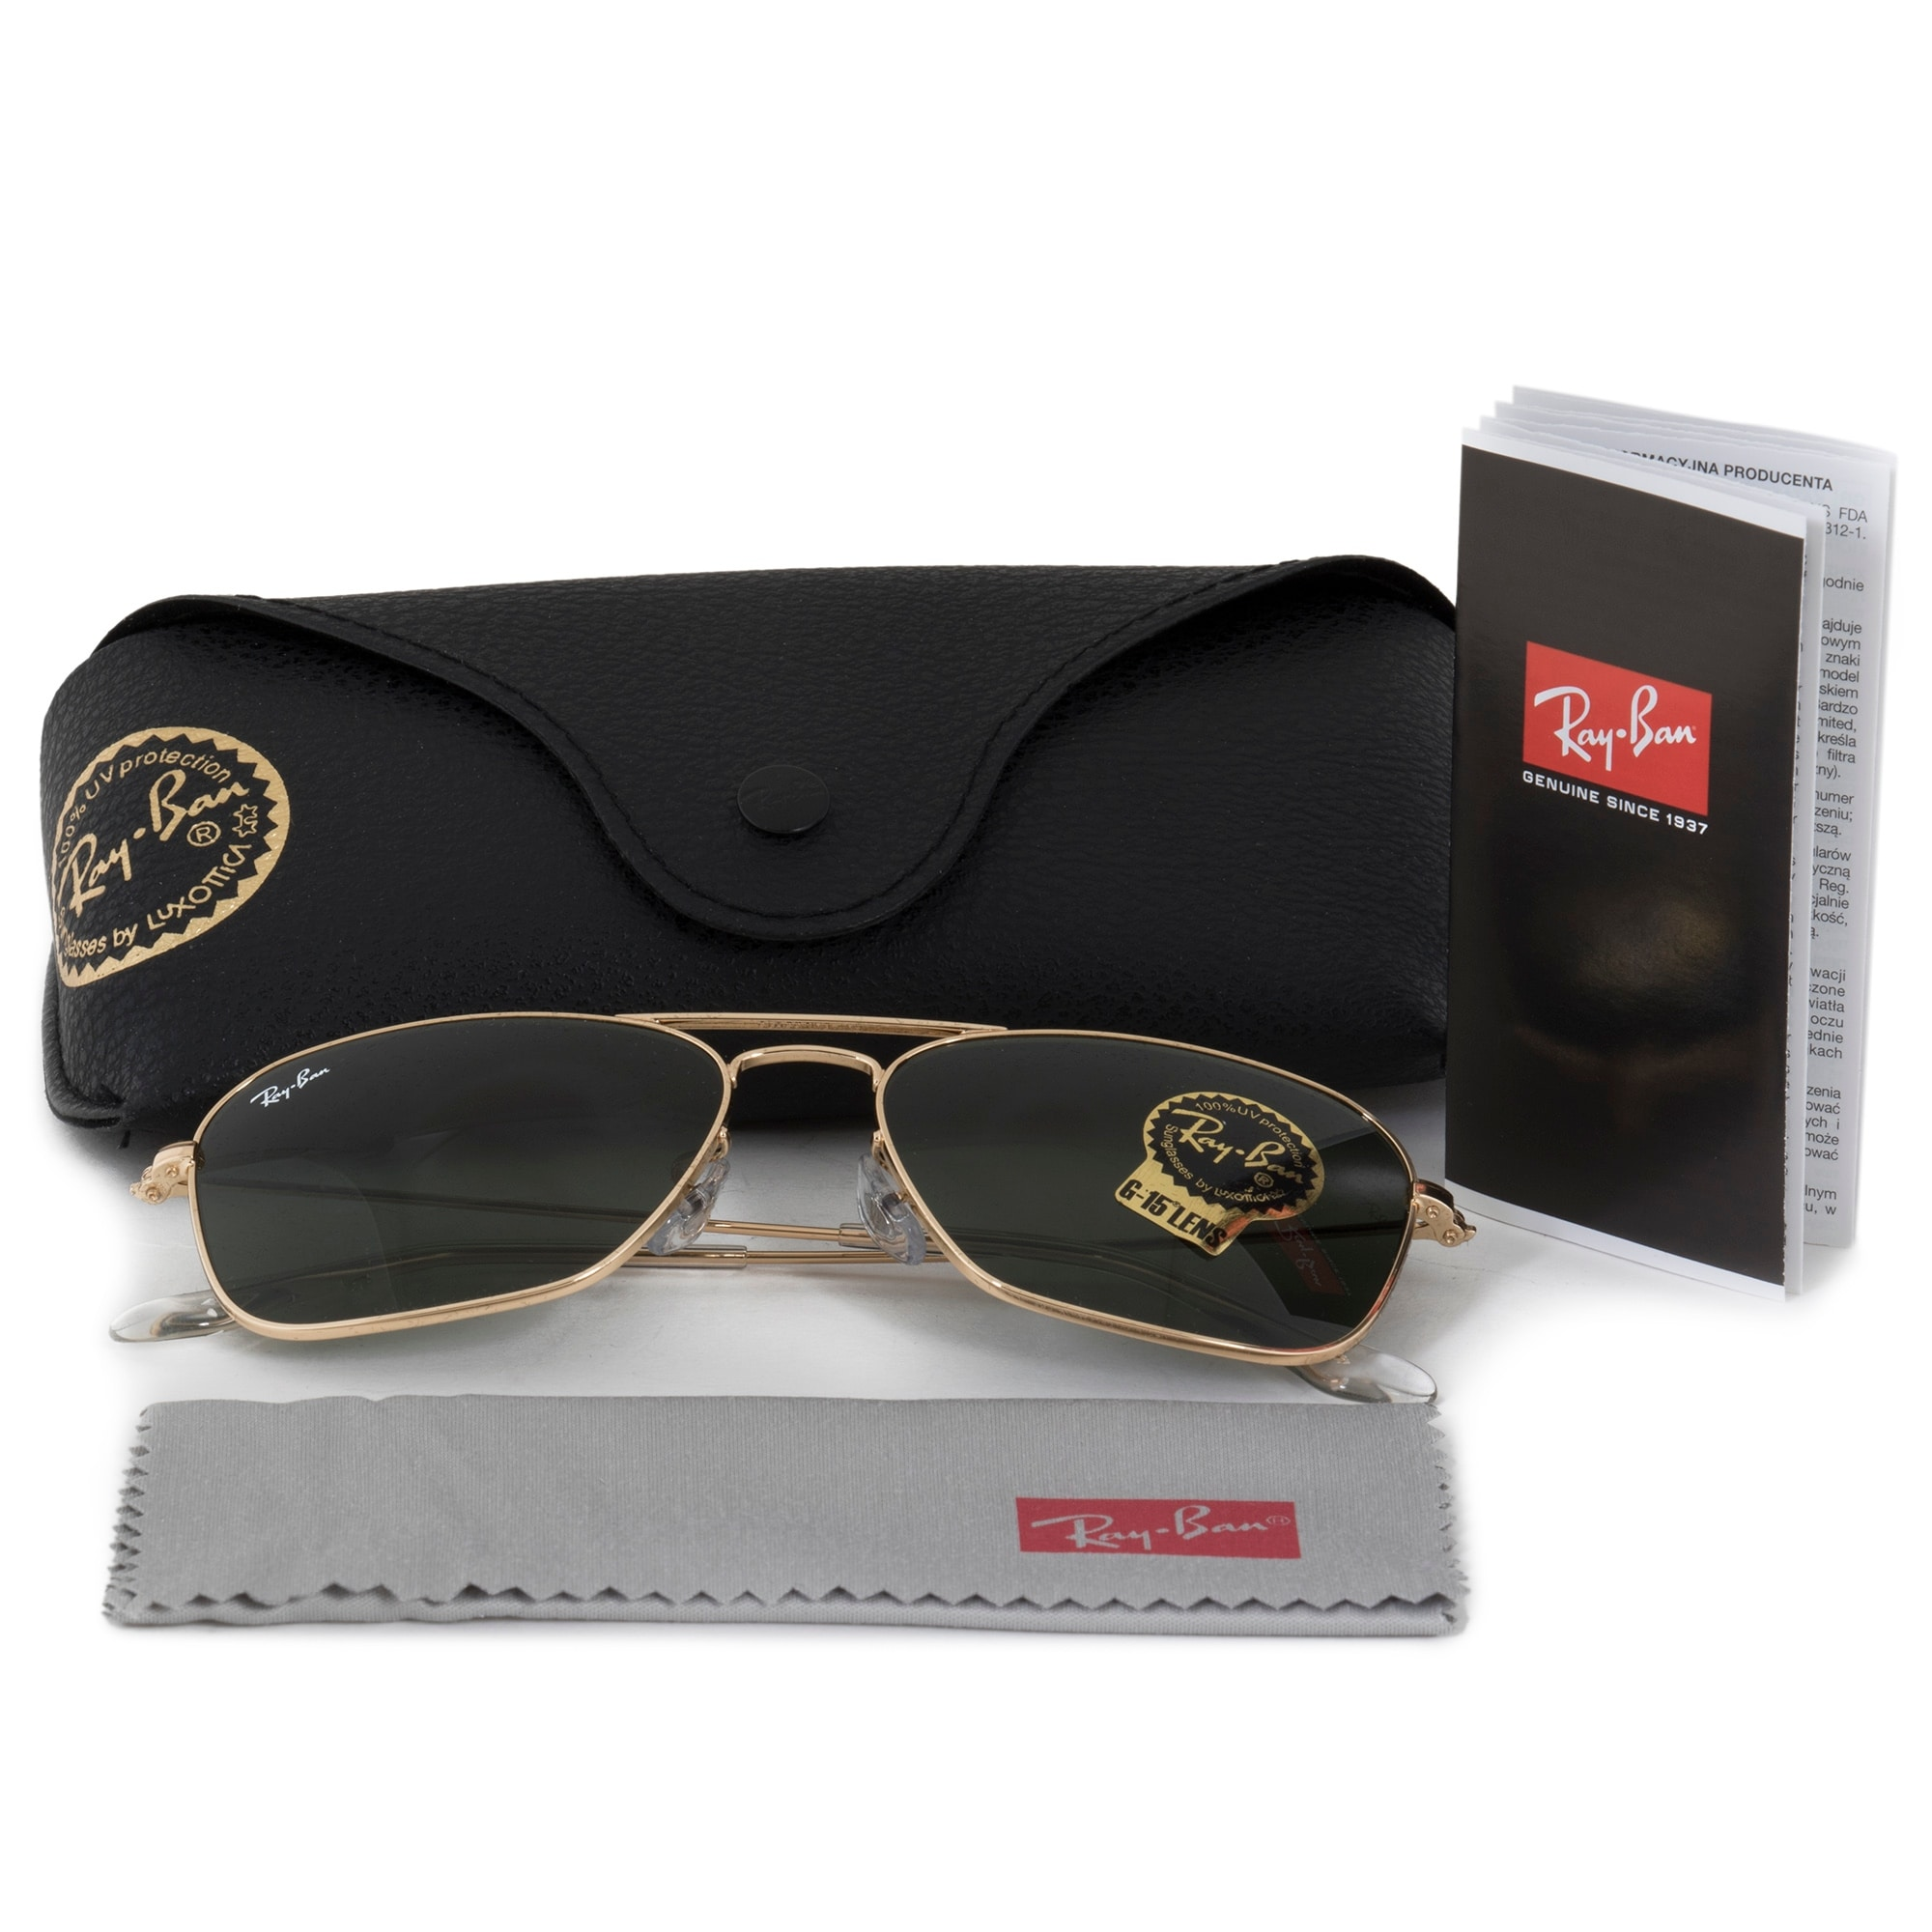 34f9a8c32d Shop Ray-Ban Caravan Sunglasses RB3136 001 55